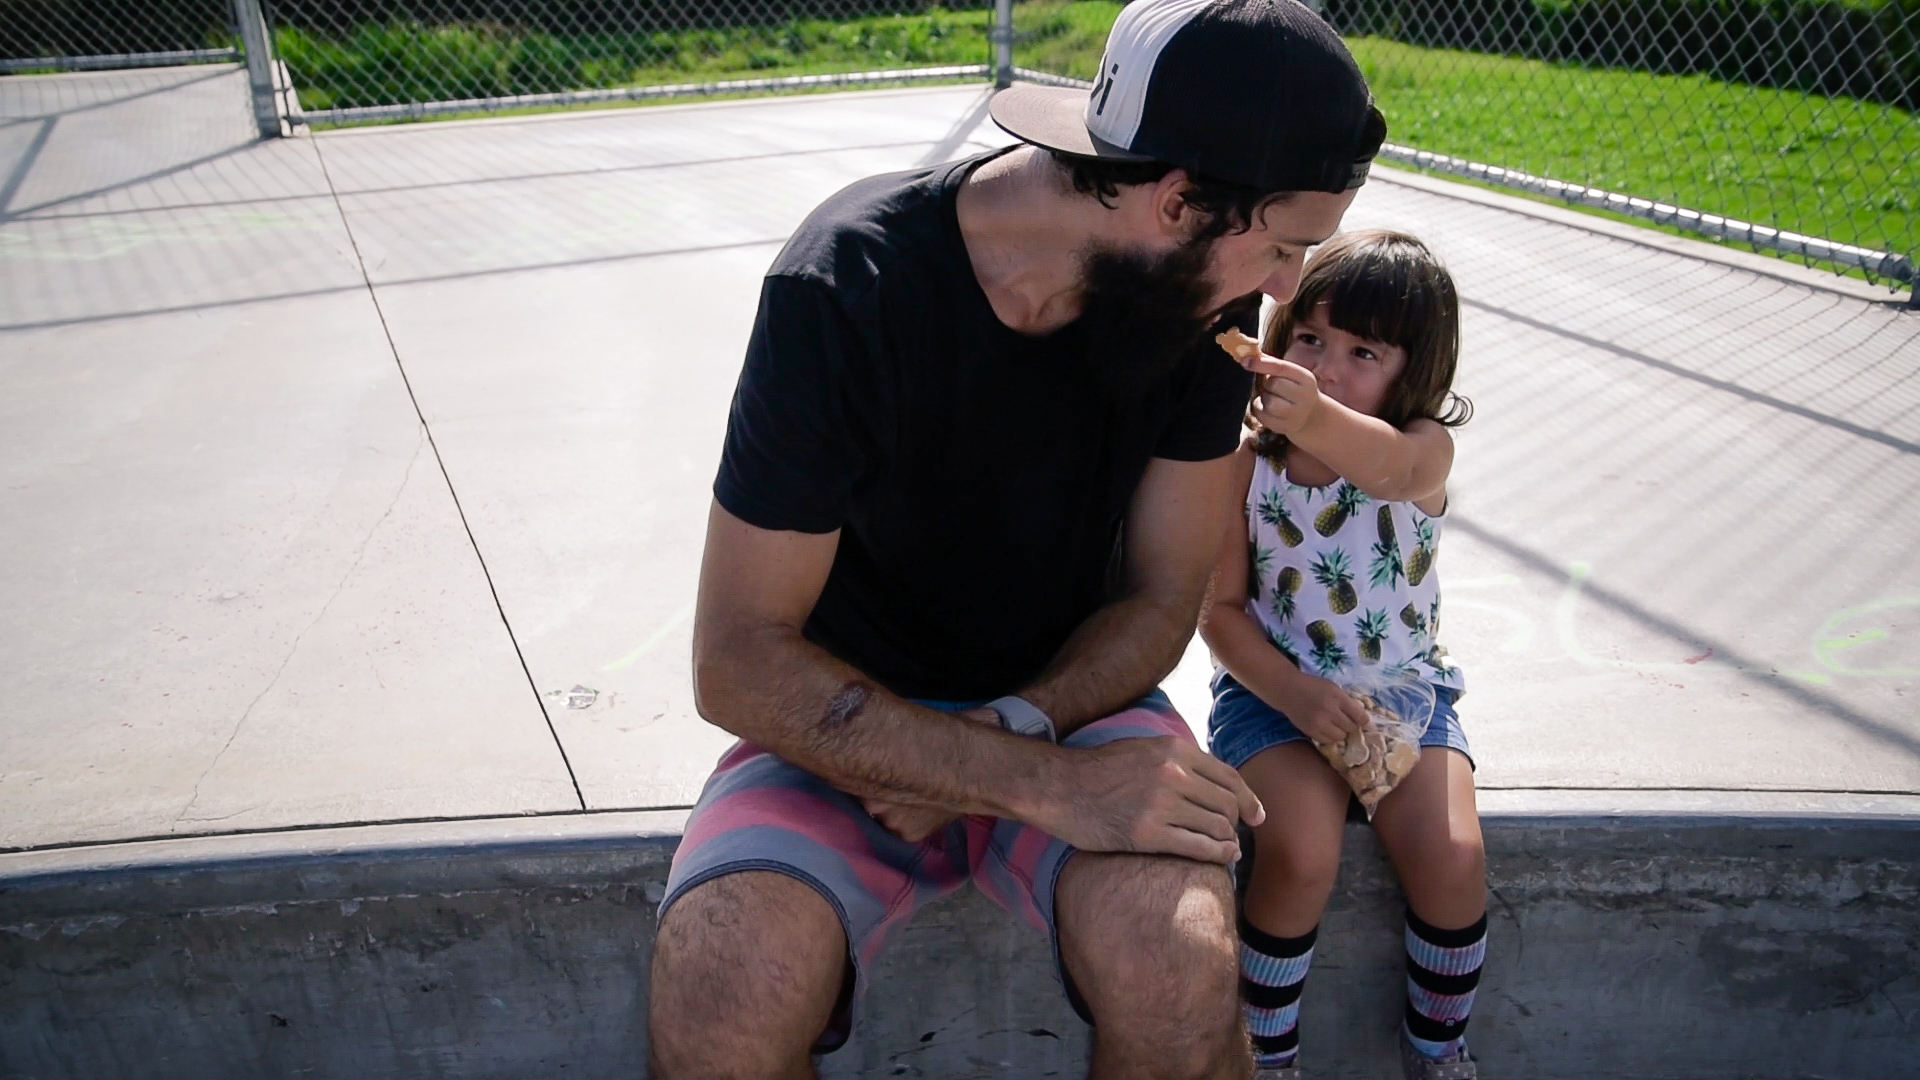 daughter feeding dad a snack by springfield illinois photographer lydia stuemke